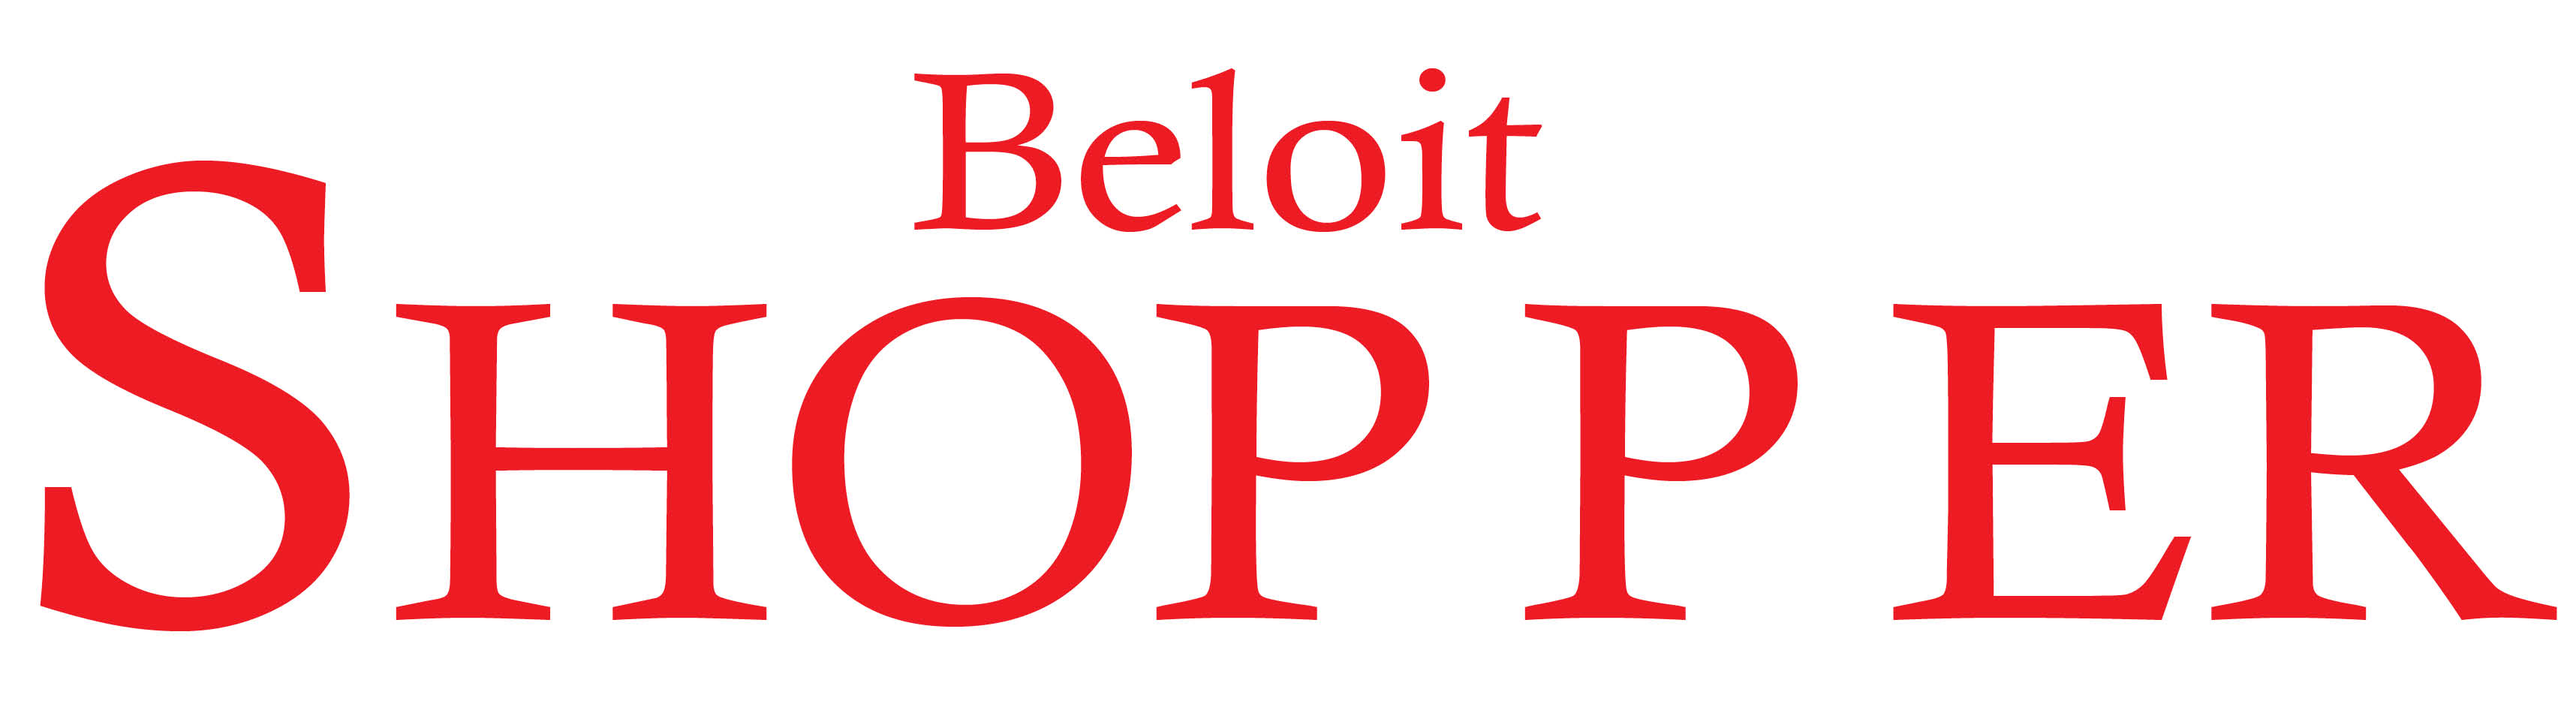 4/26/18 Beloit Shopper